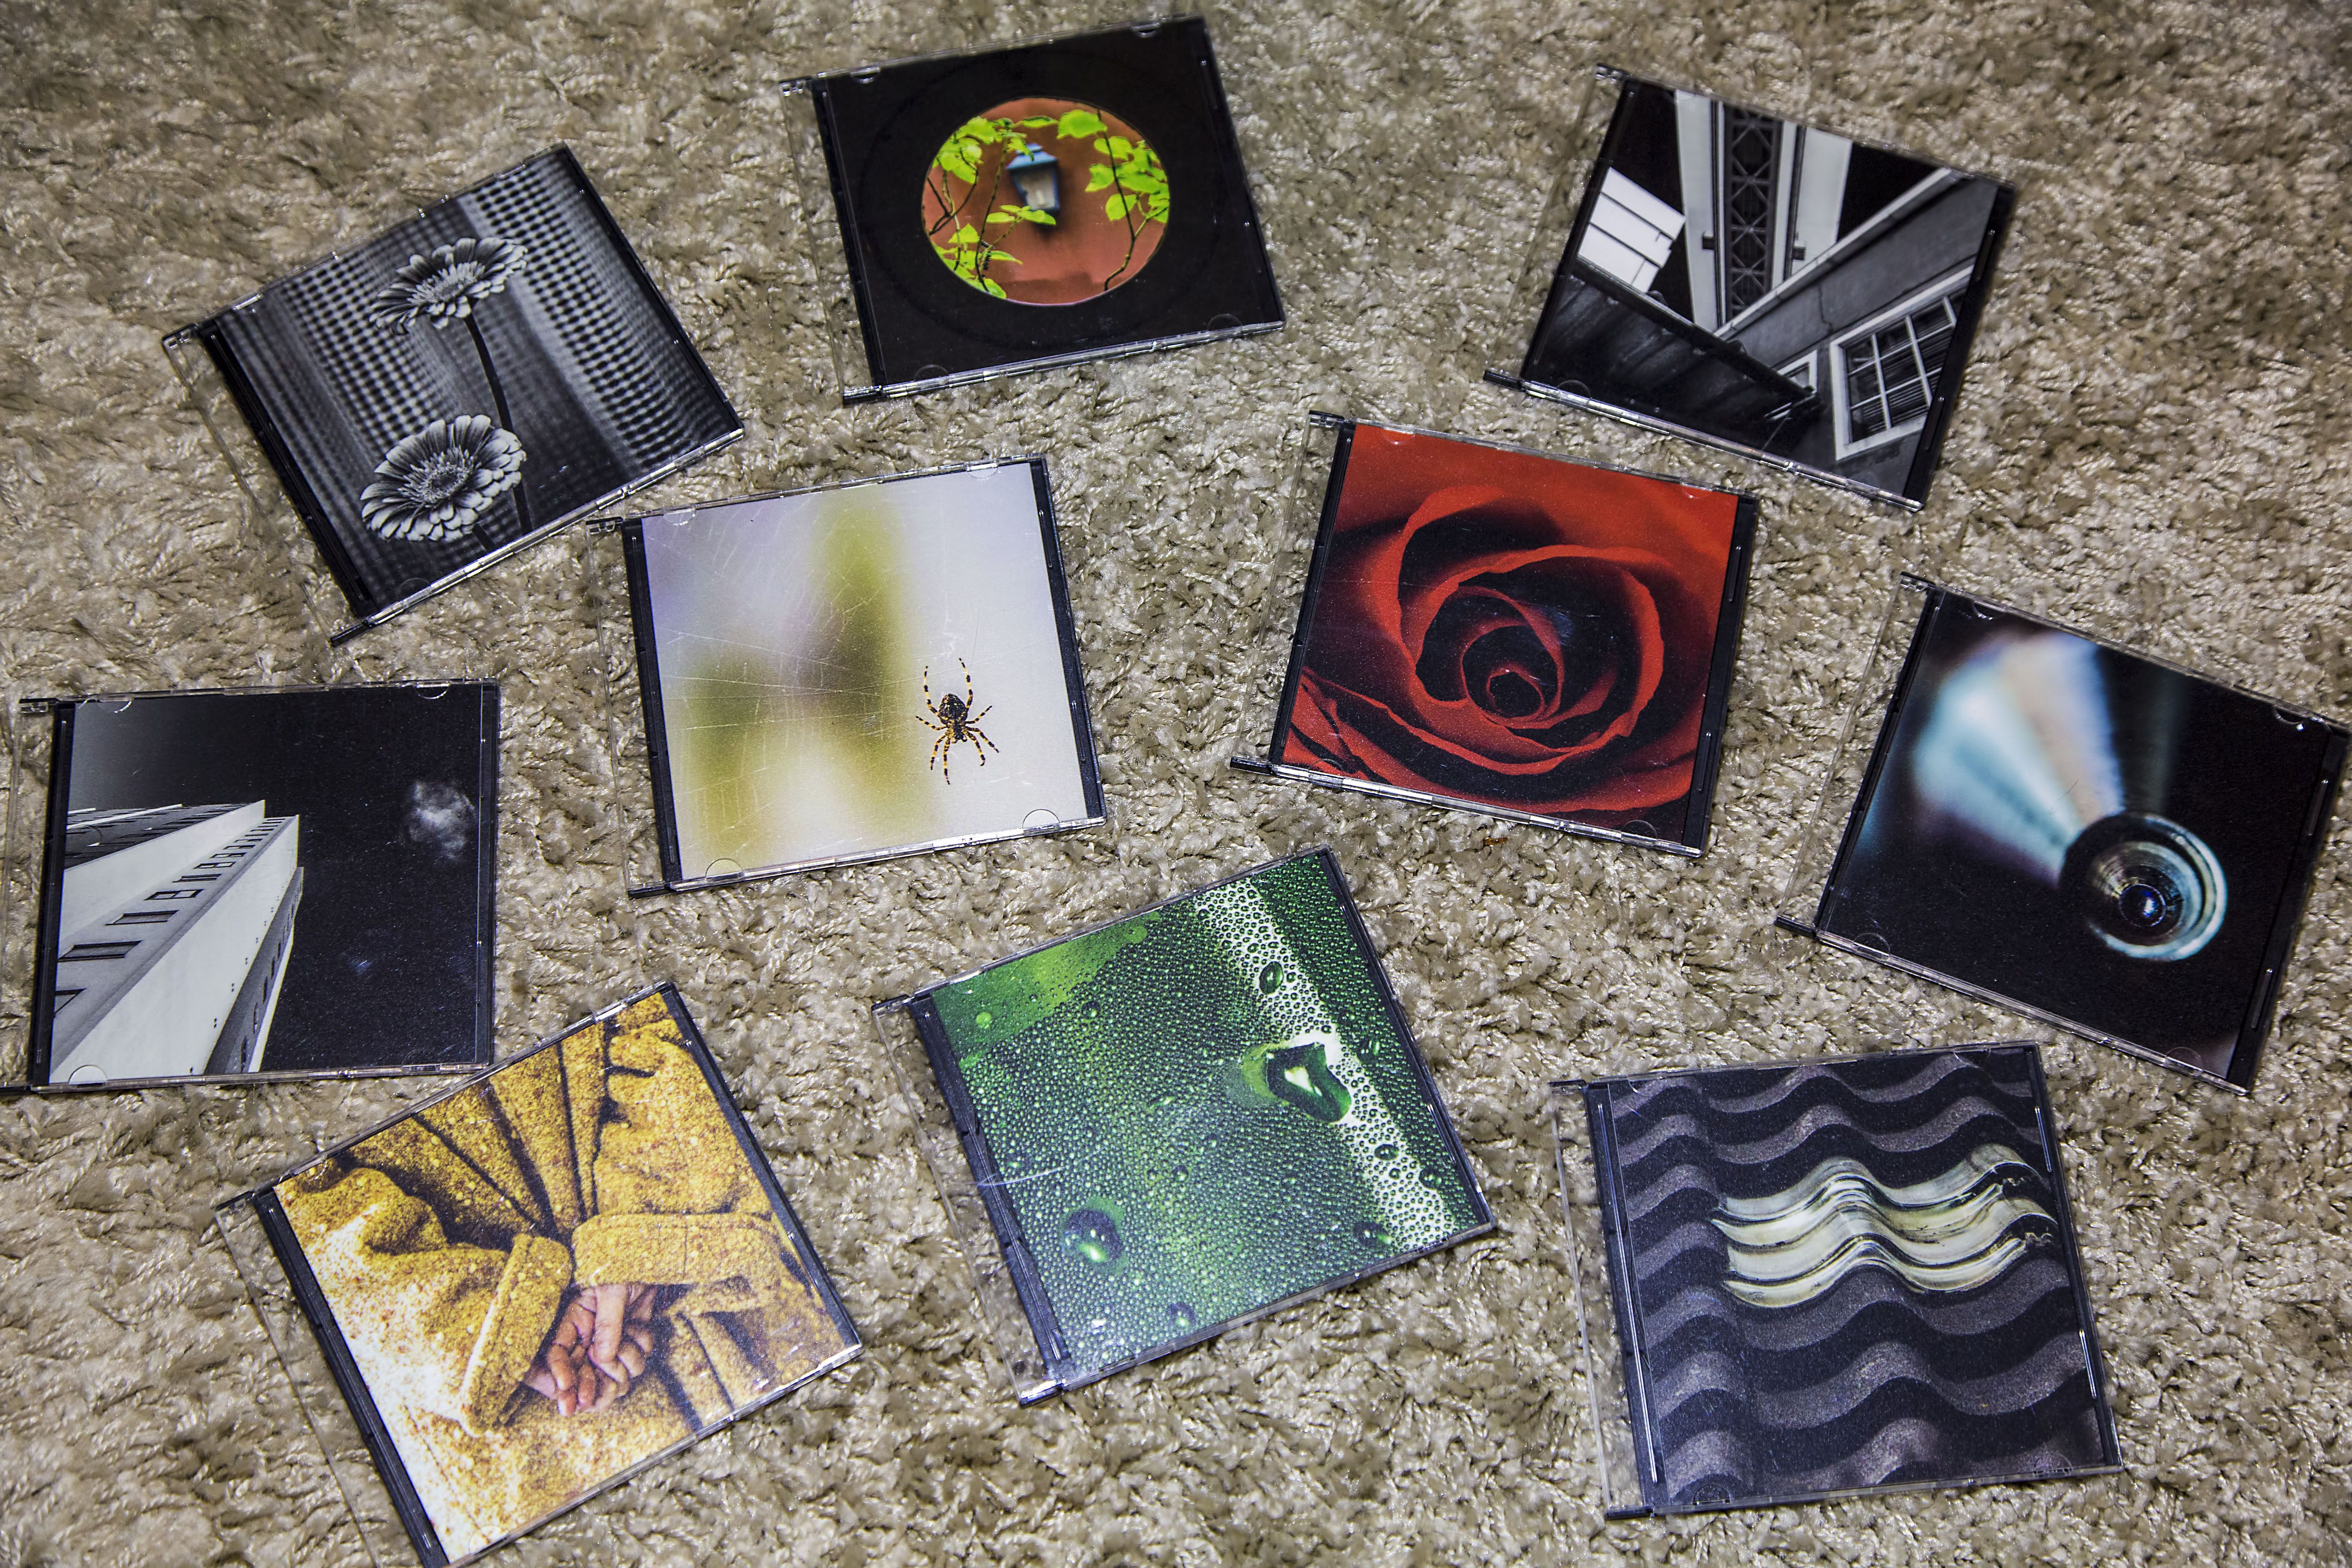 #12.01. 12 by 12's. (pieces for an art exibit named 12x12 going on December 12)